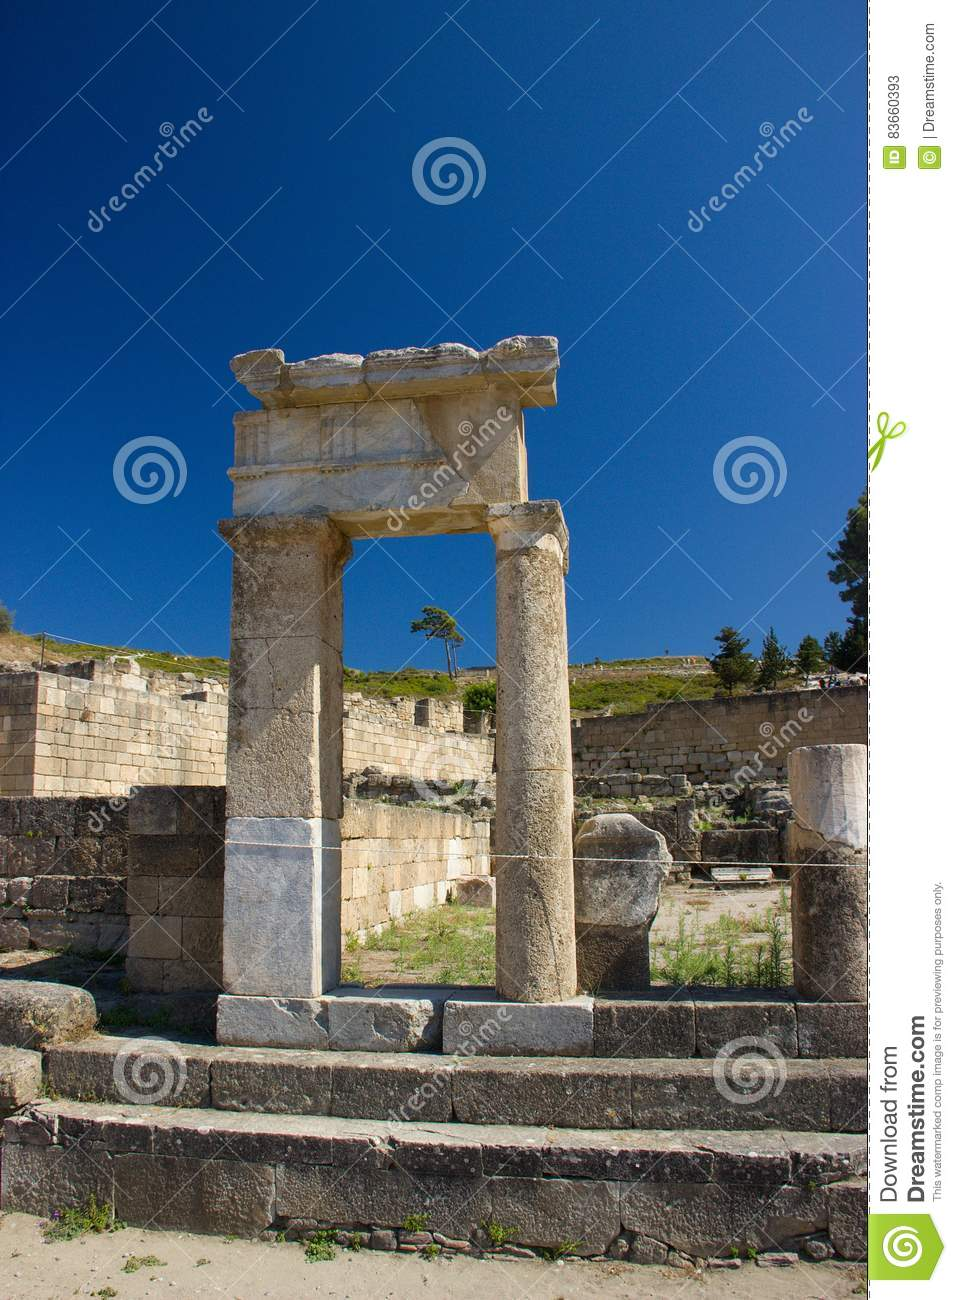 Ancient Kamiros Rhodos Greece architecture historic